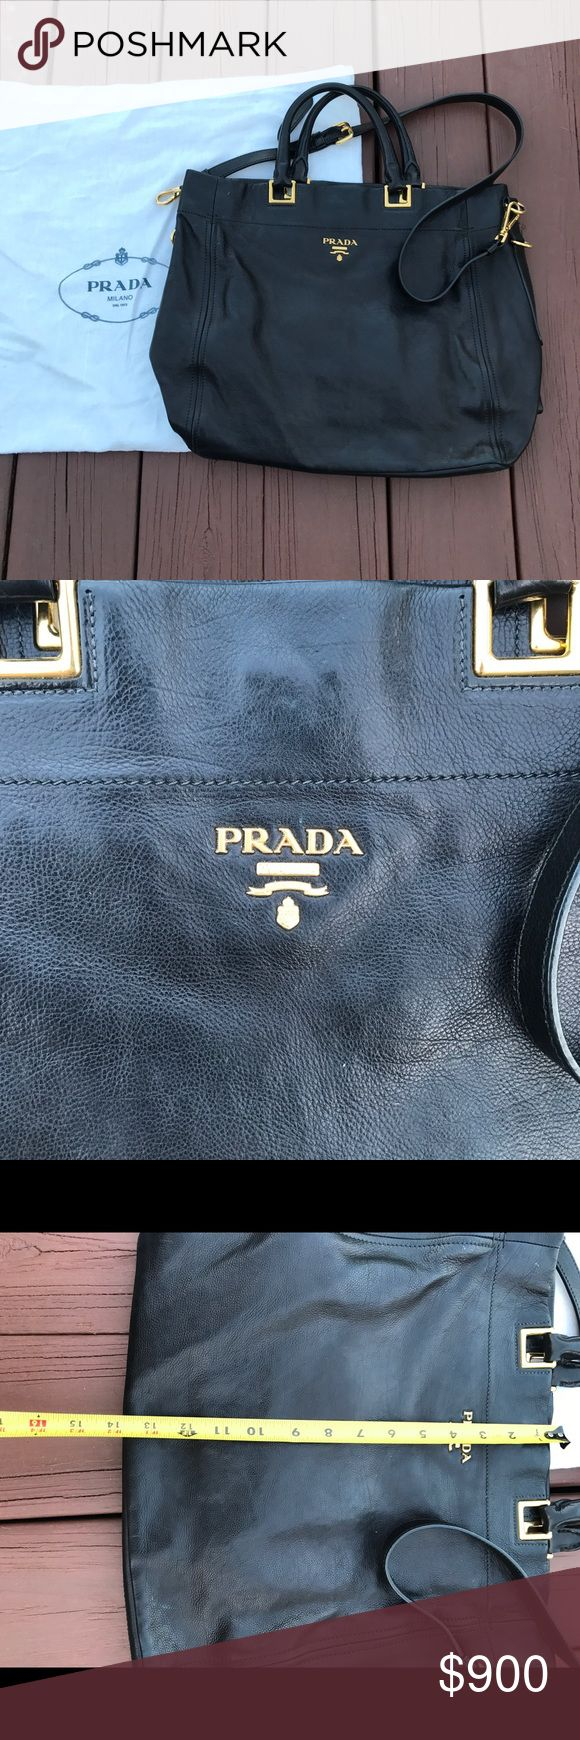 Prada handbag This is a hard one for me to let go, but I want to get an executive handbag instead. It was my very first Prada purchase, a gift for myself for graduating pharmacy school. It has a sentimental value to me, but it's time to move on! Gently used, normal light wear. No stains or rips anywhere. Such a classic. Let me know if more pictures are needed. Purchased from Neiman Marcus in 2012. I'm pretty set on the price-already over 1/2 off & in almost perfect condition! Bags Totes